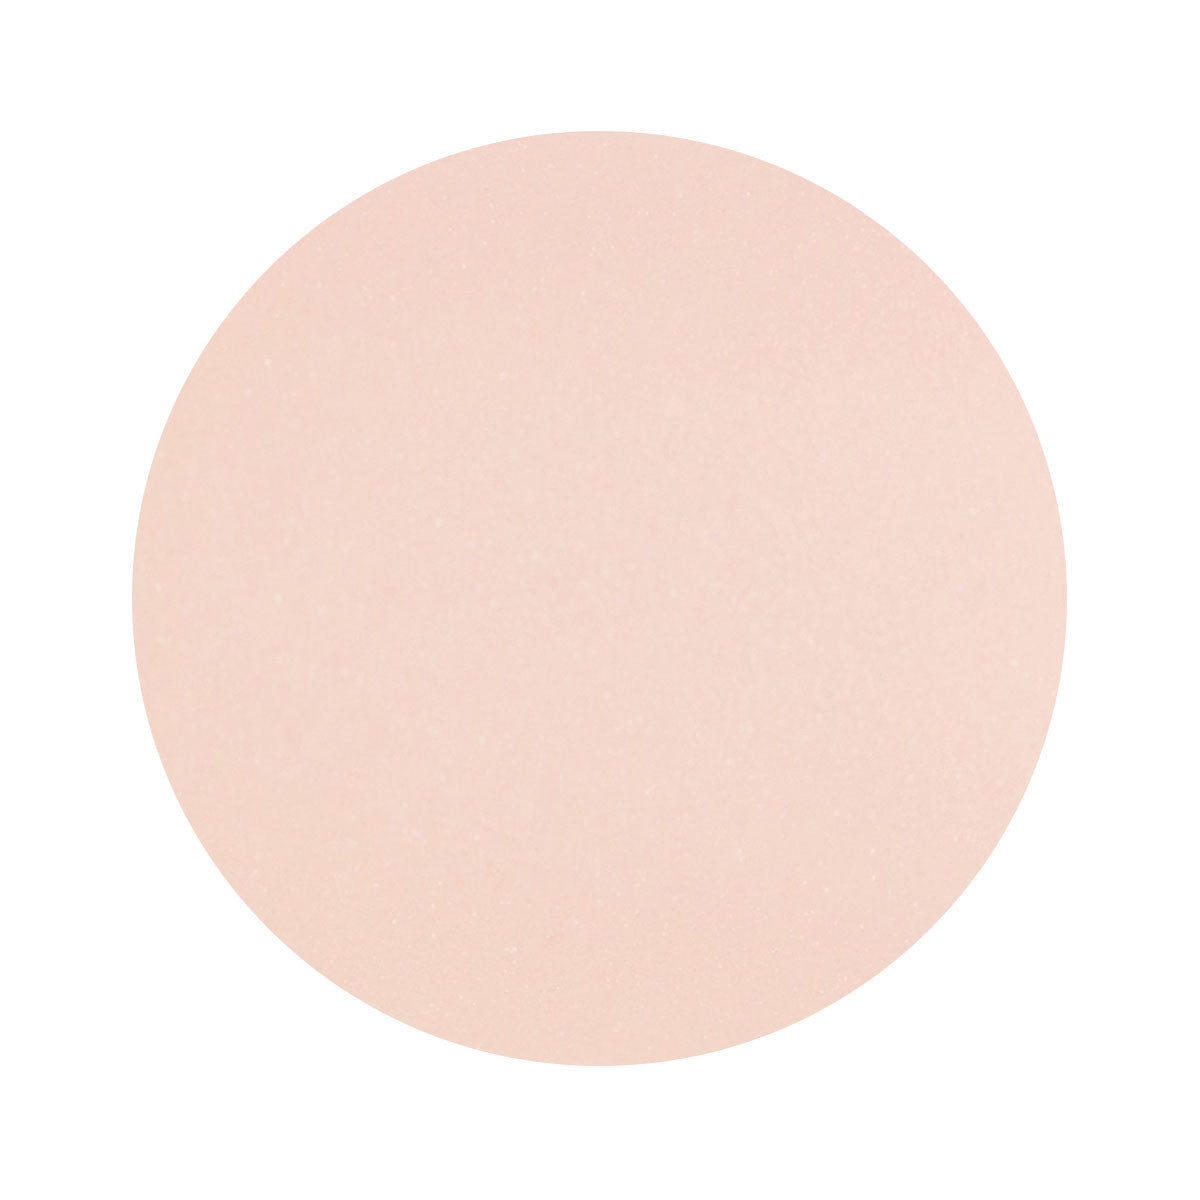 SNS Dipping Powder - Barely There Pink 1oz